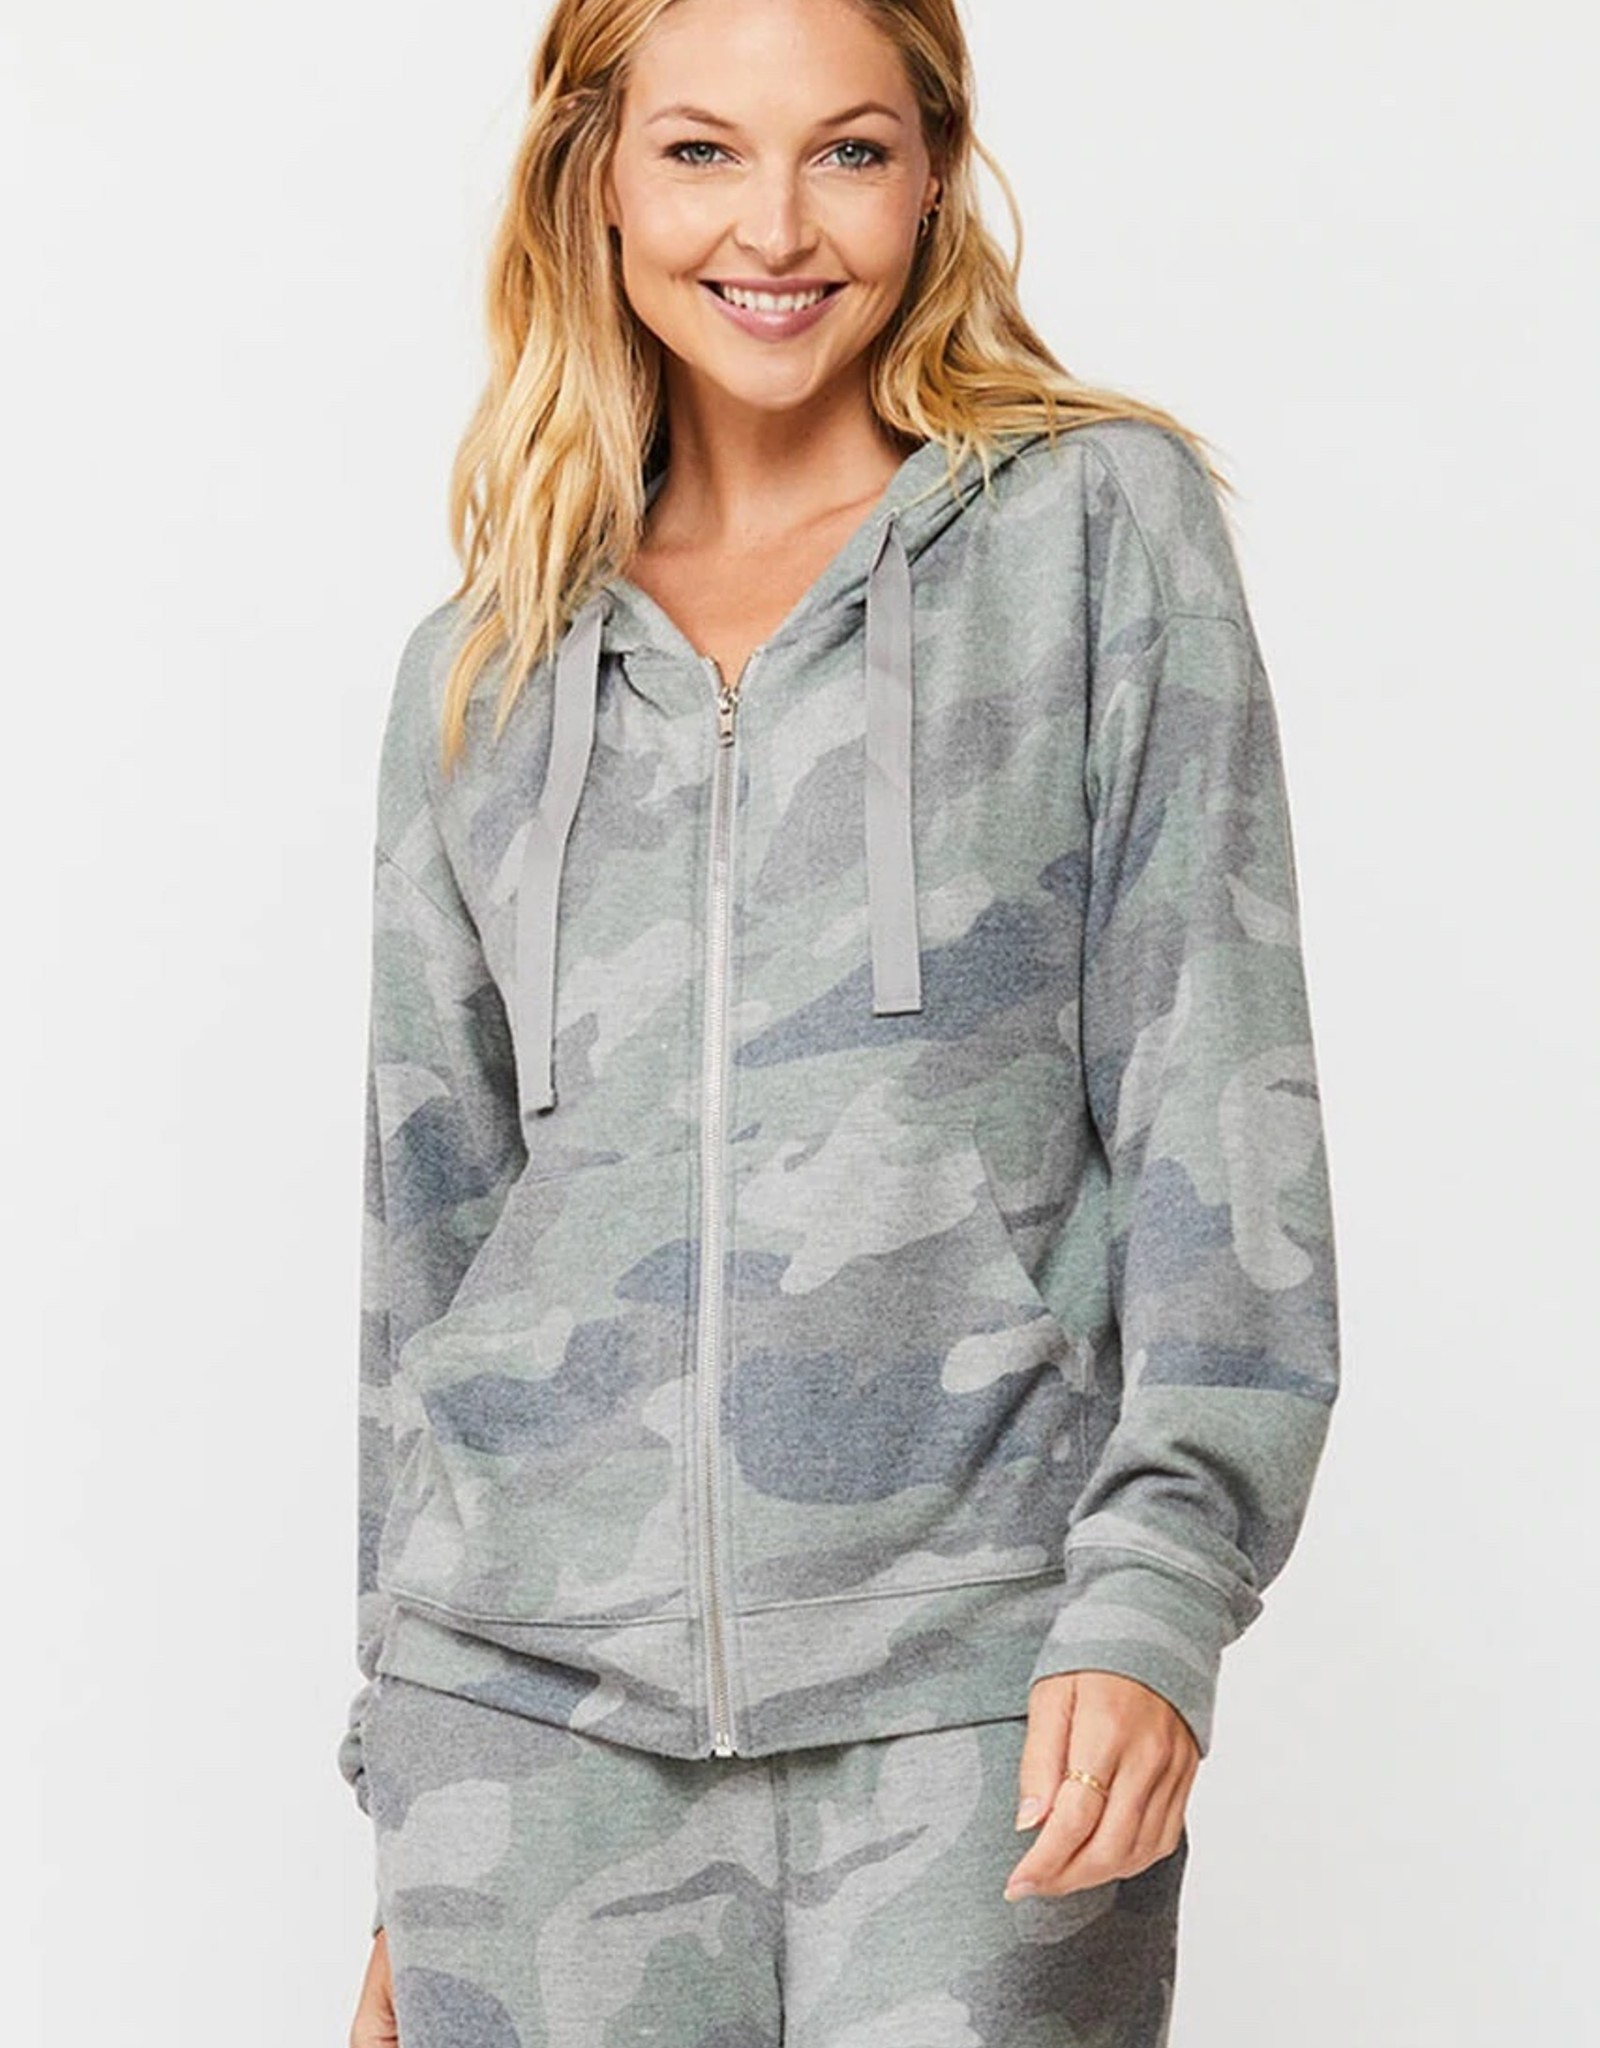 Velvet Heart Velvet Heart Hollace Camo Hooded Zip Up